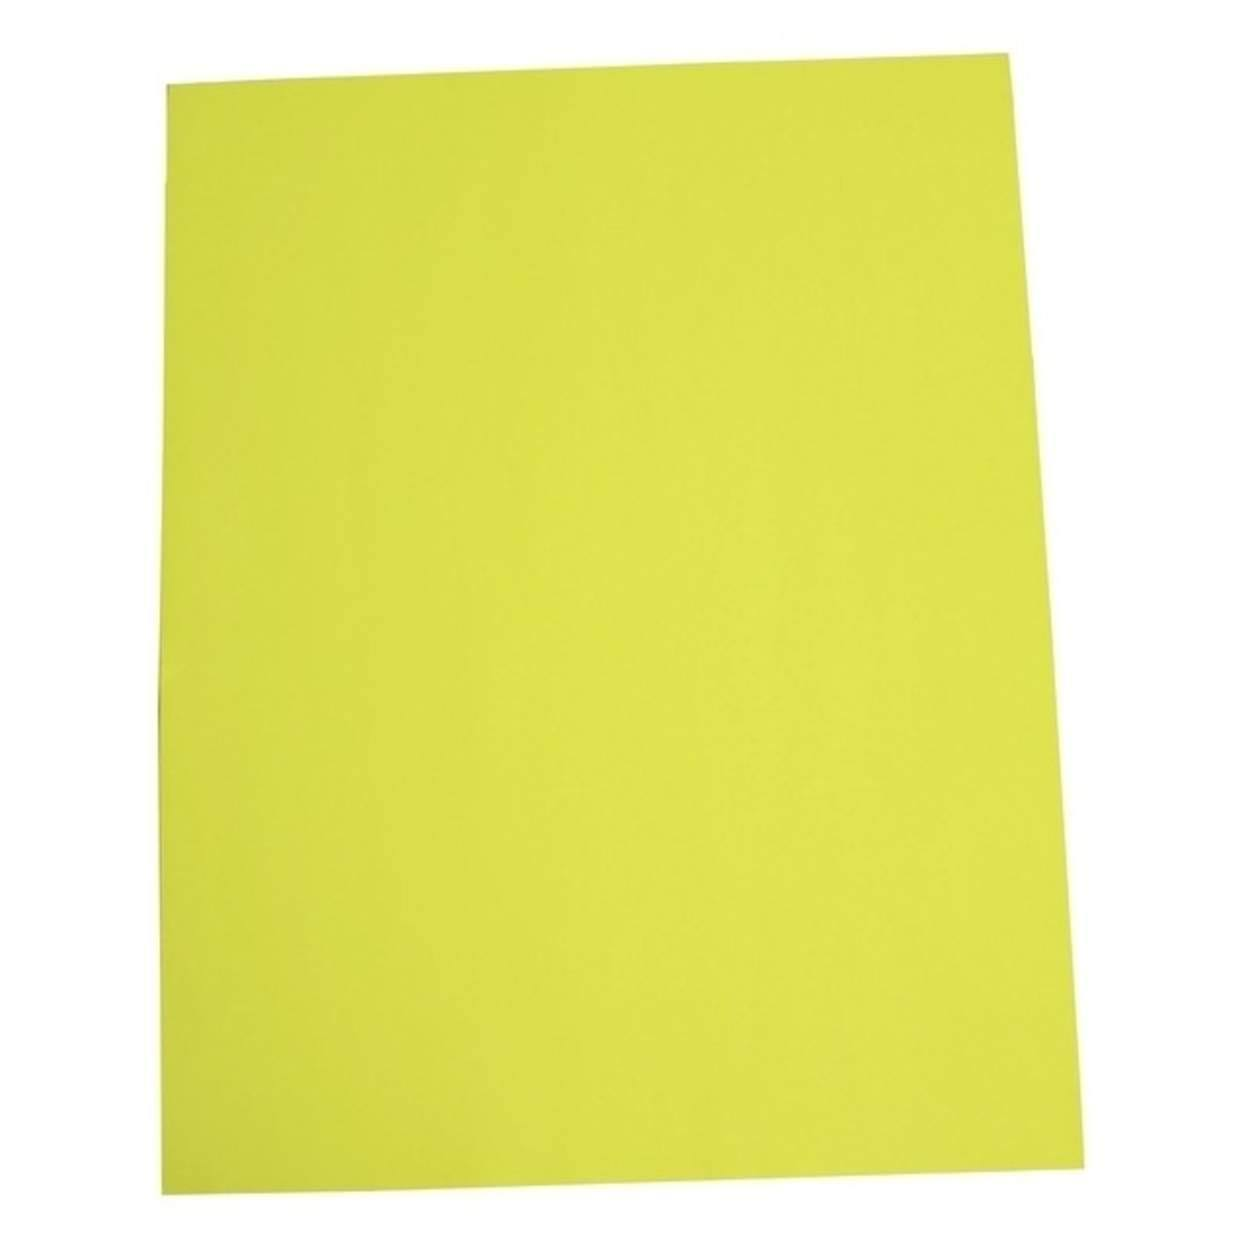 "Norcom 79863-25 22"" x 28"" Fluorescent Yellow Poster Board (Pack of 25)"